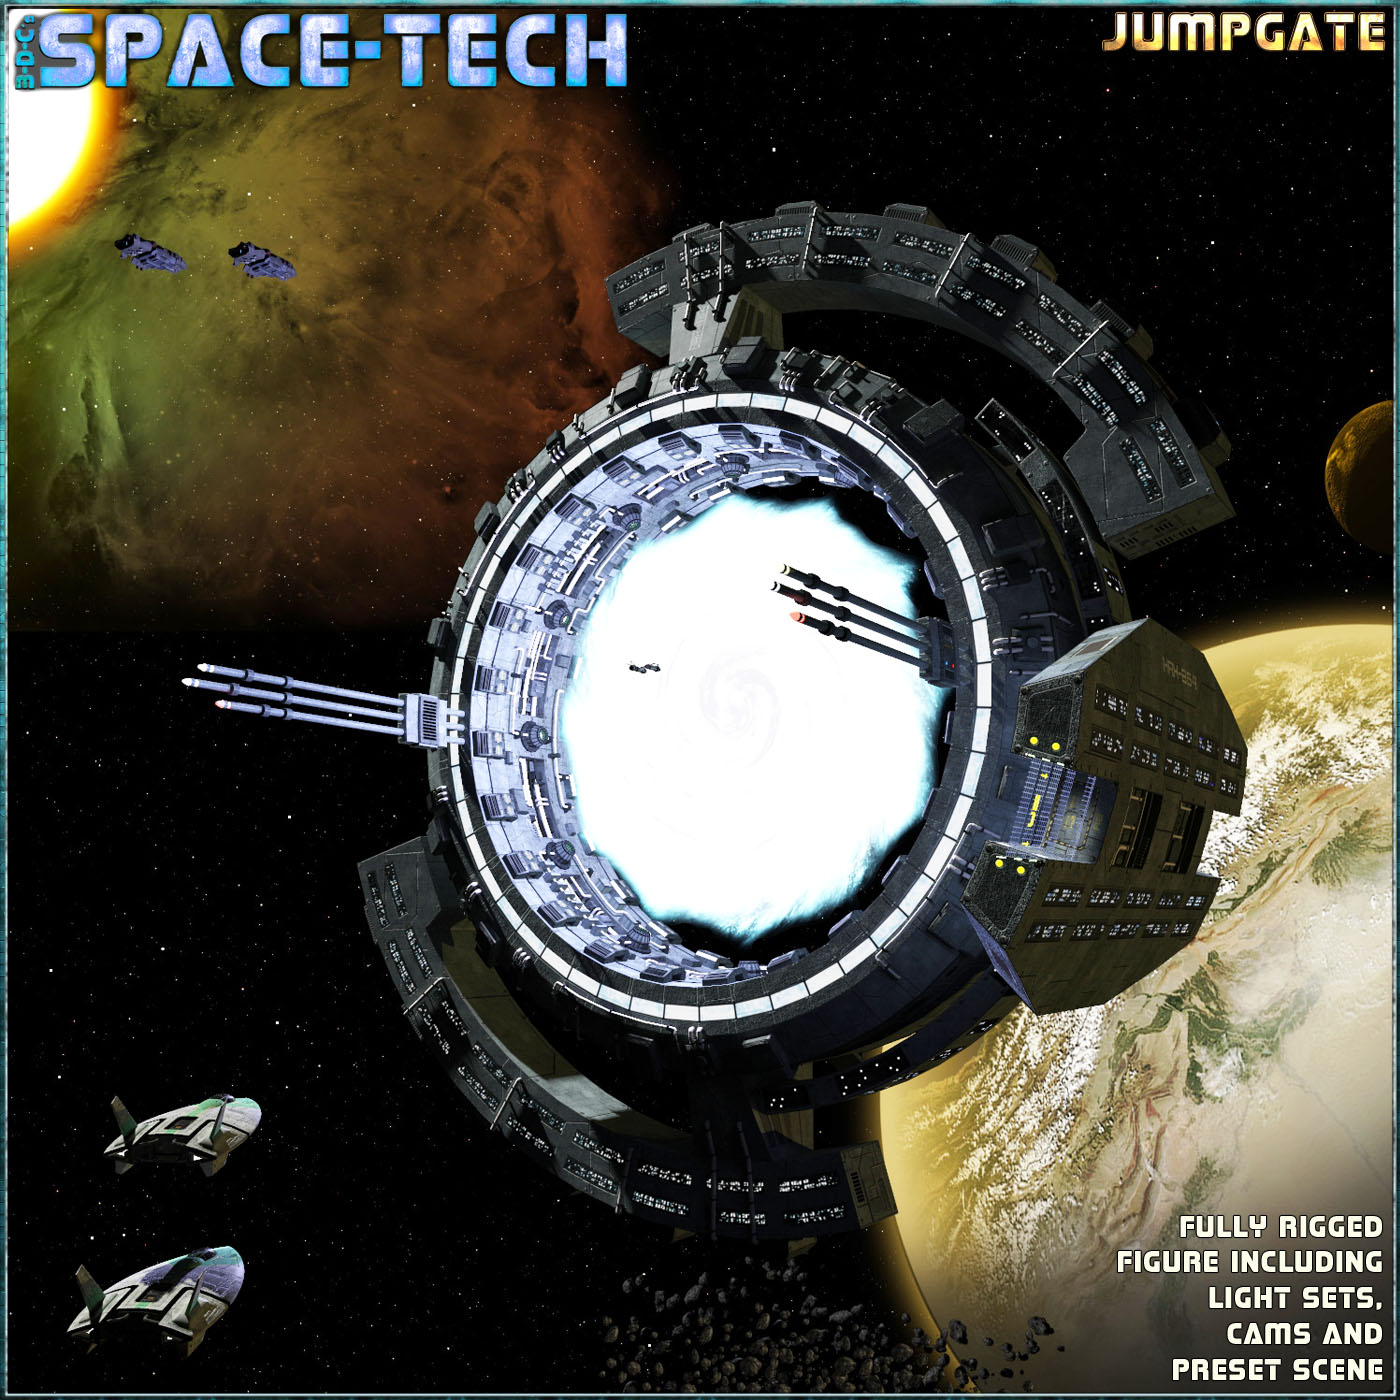 SpaceTech: JumpGate